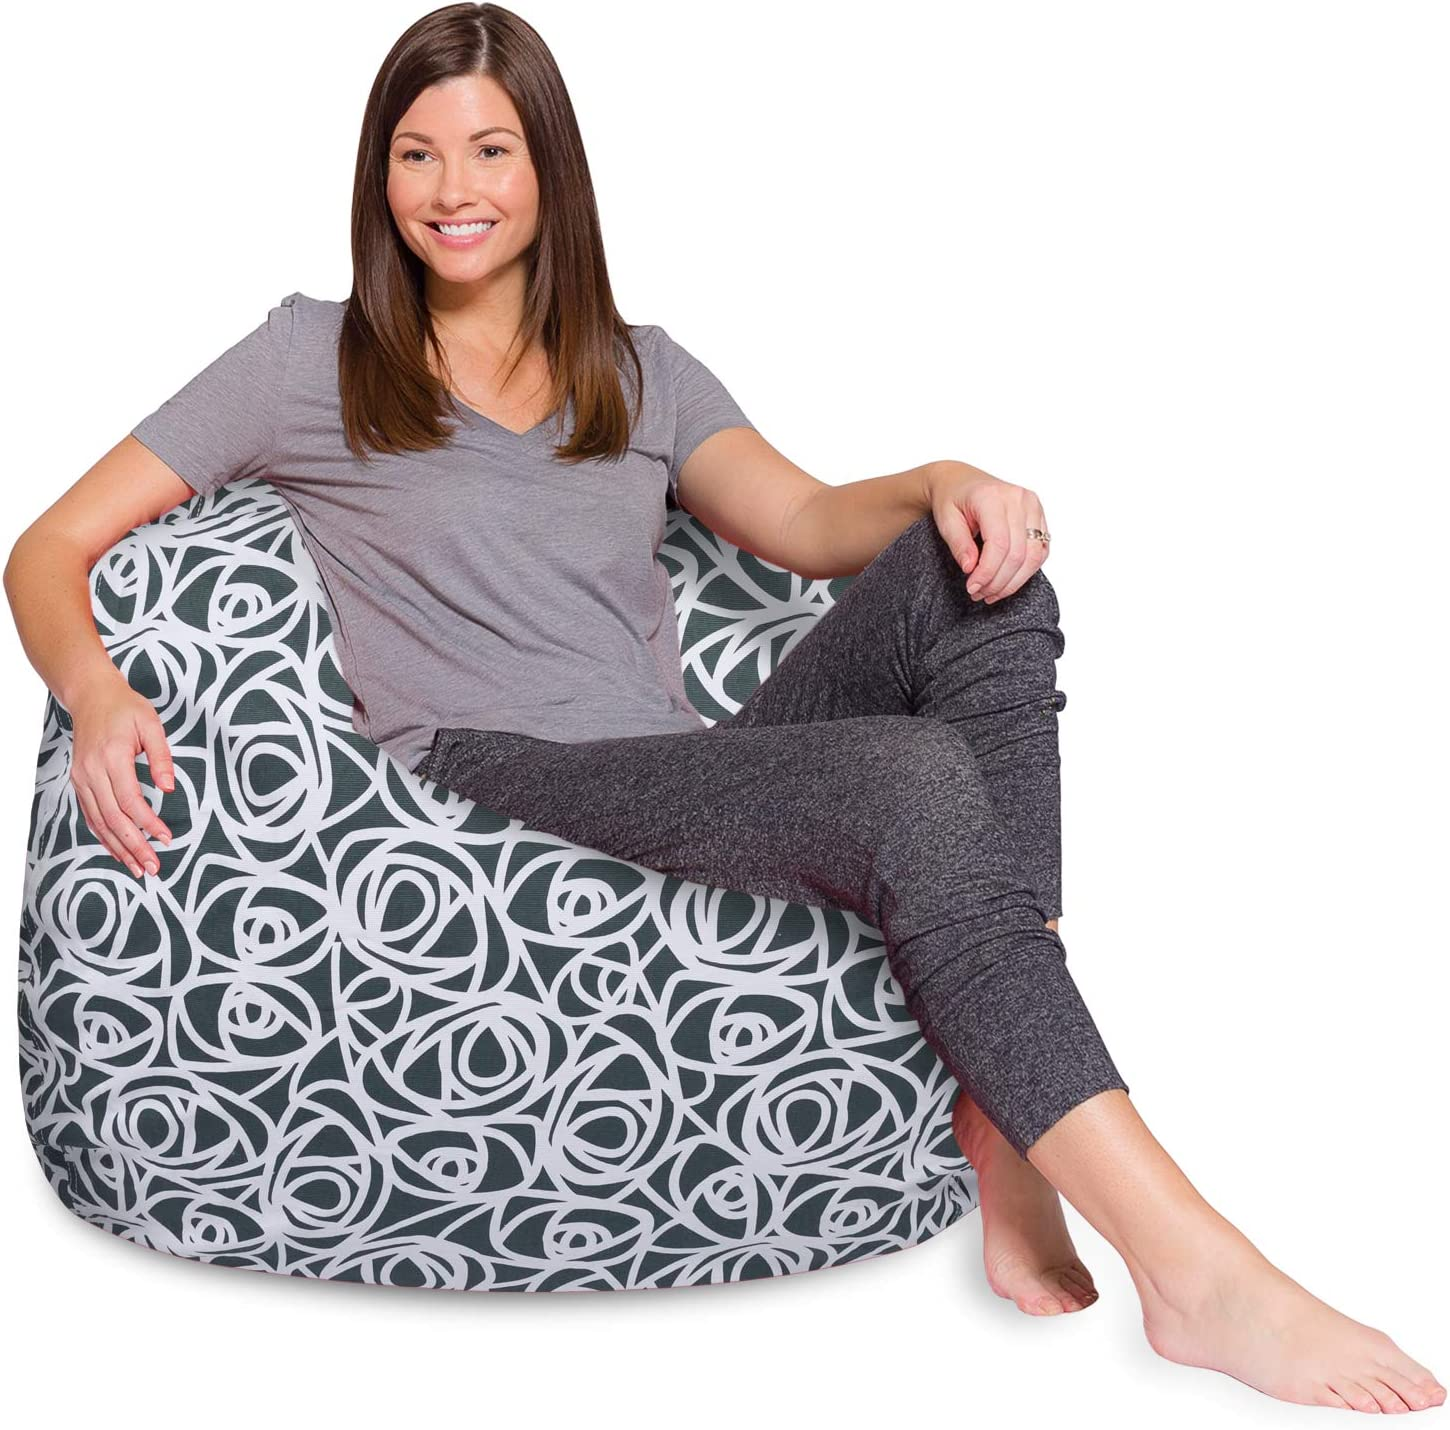 Posh Creations Bean Bag Chair for Kids, Teens, and Adults Includes Removable and Machine Washable Cover, 48in - X-Large, Canvas Roses Gray